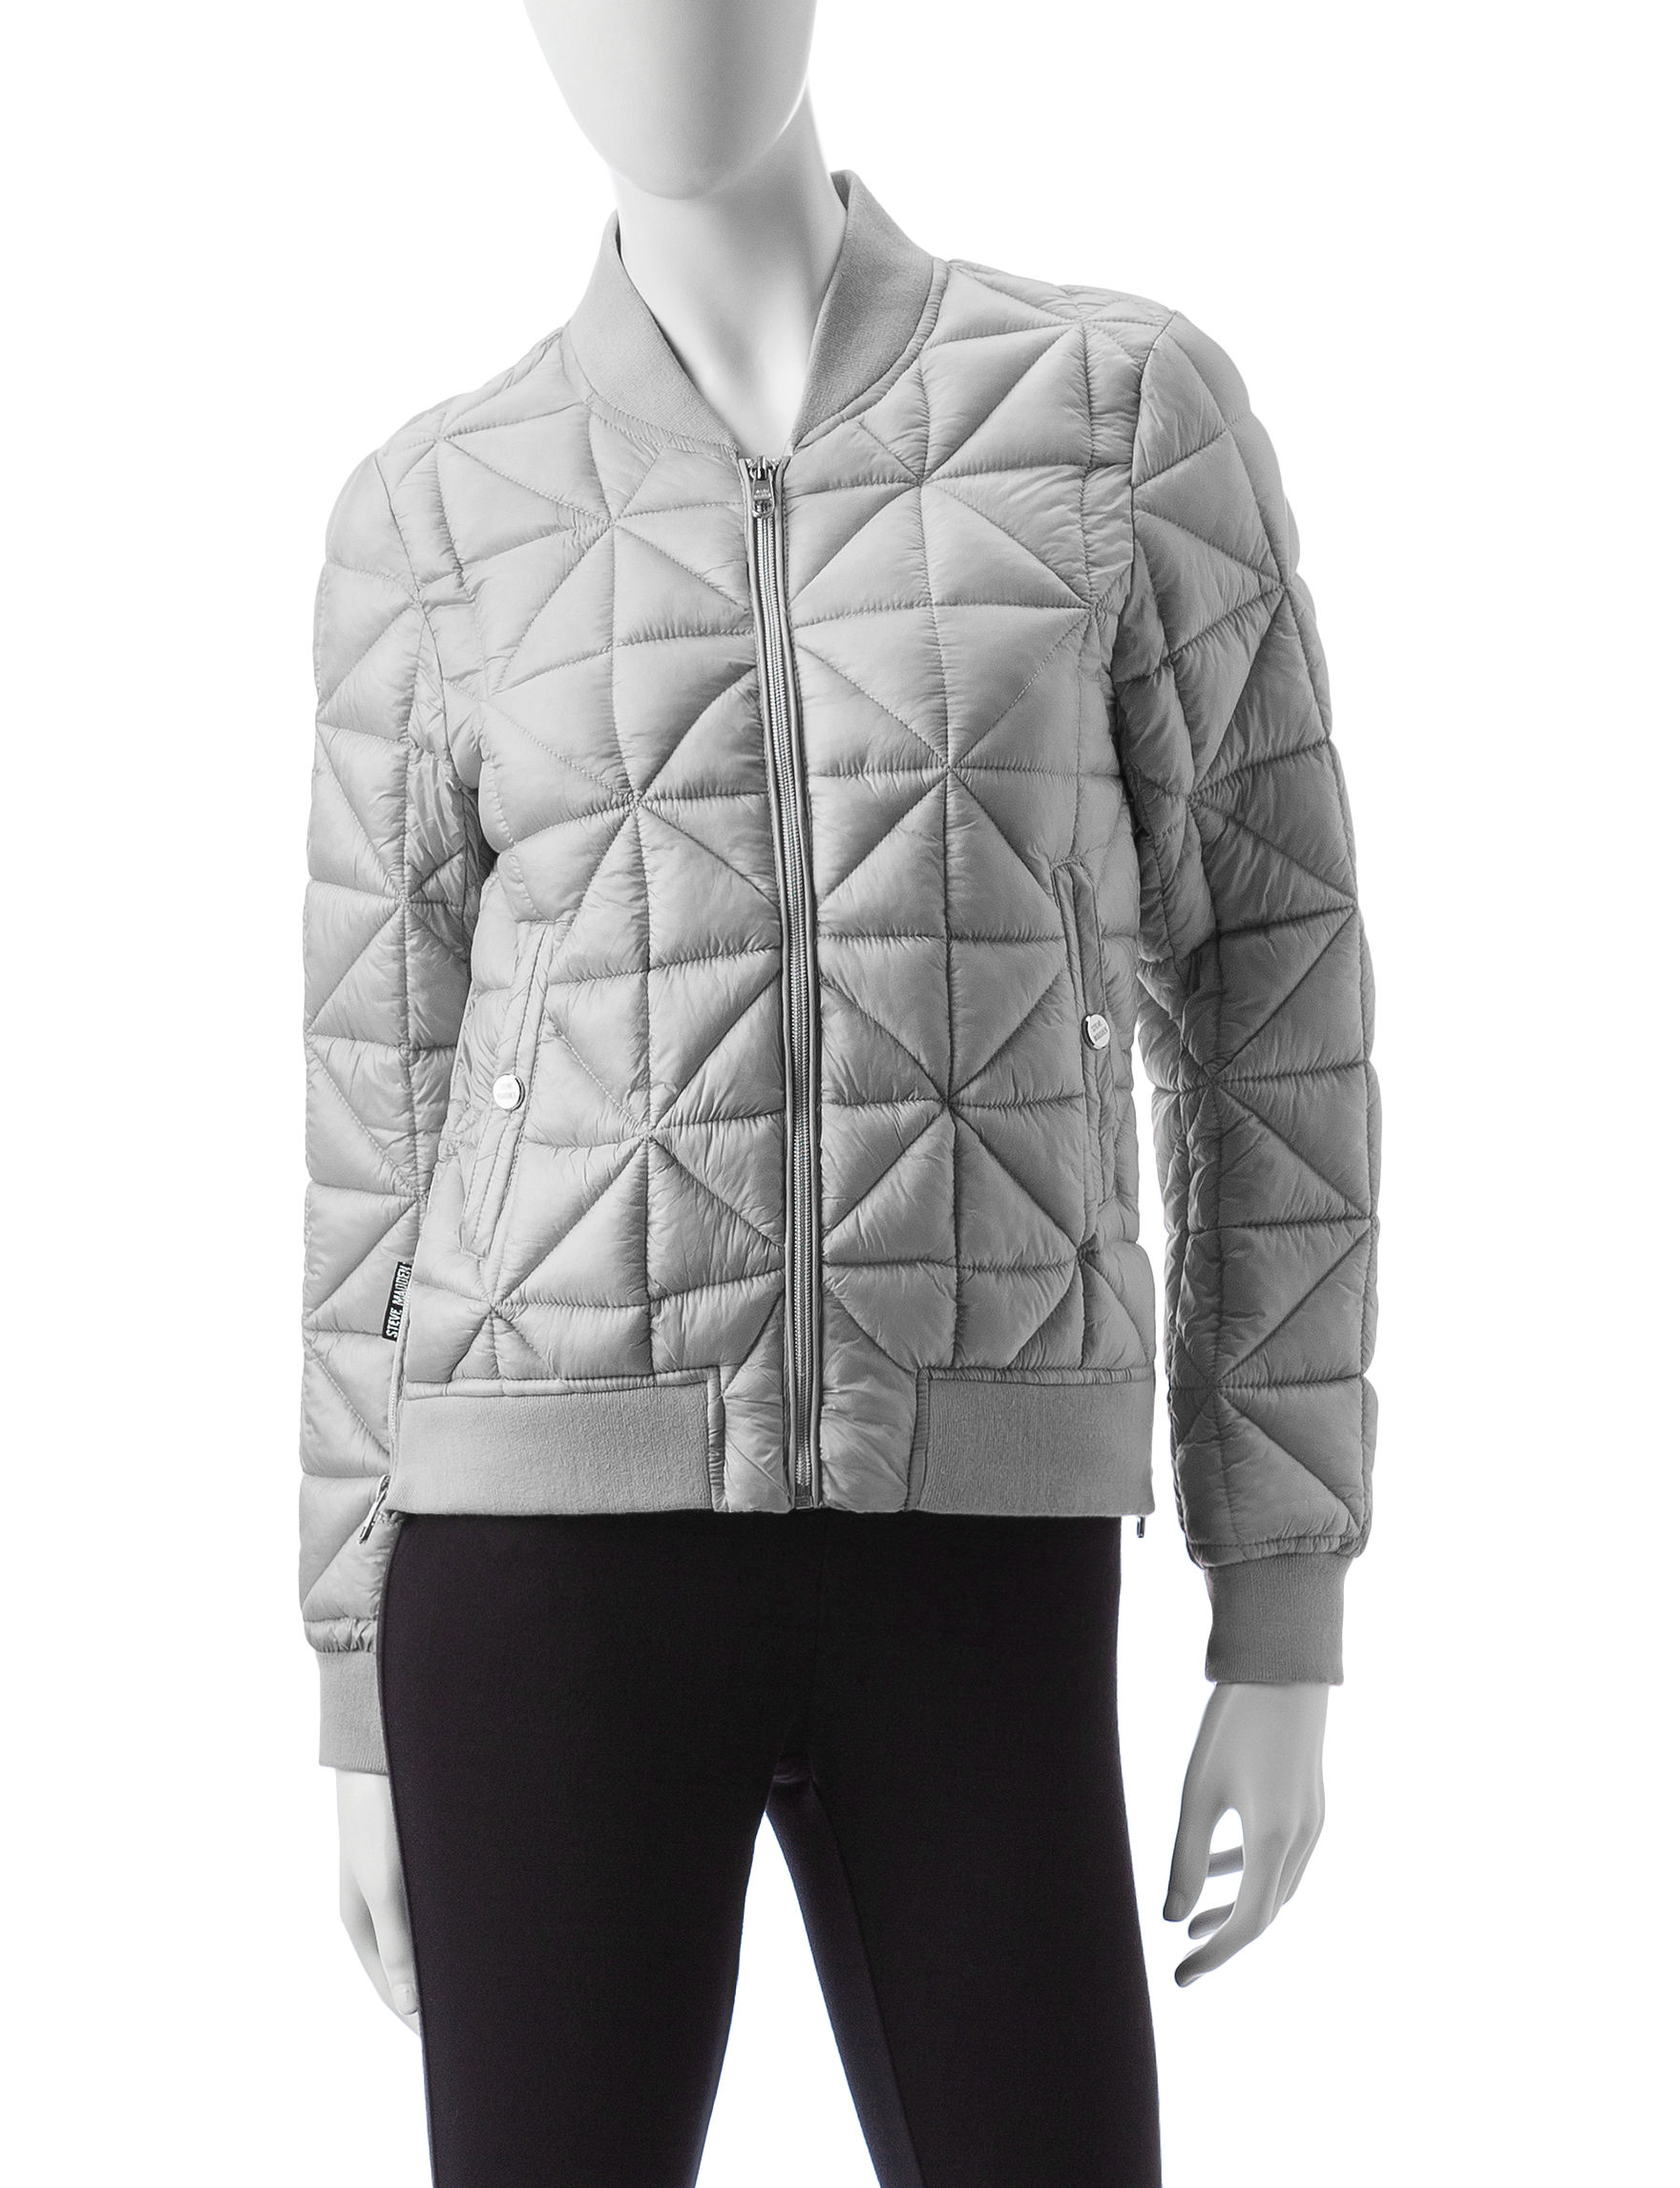 Steve Madden Silver Puffer & Quilted Jackets